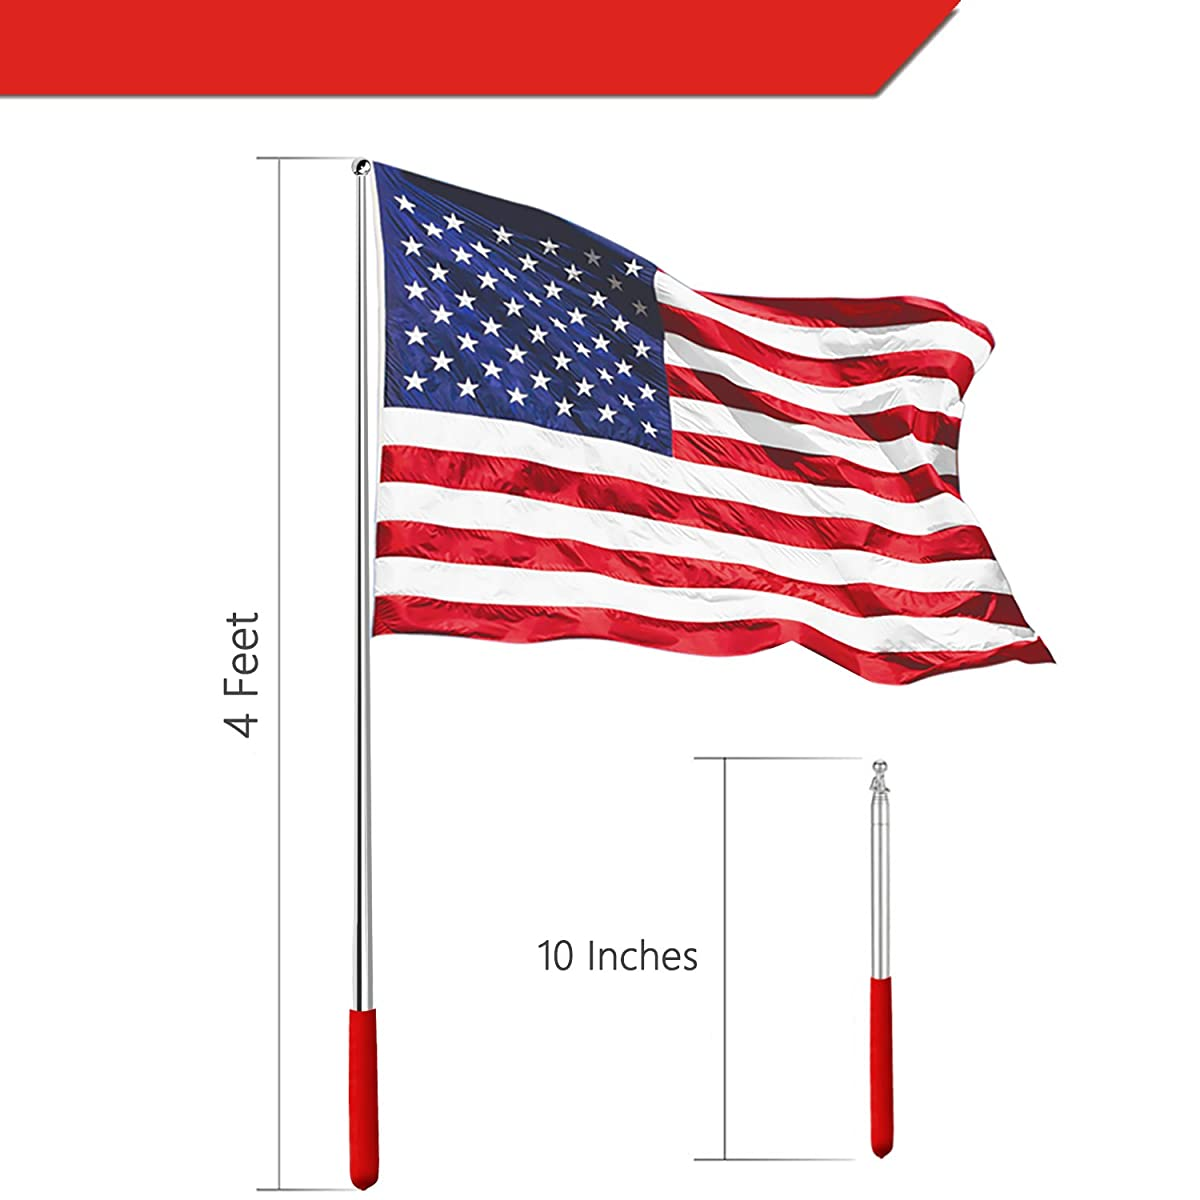 Anley 4 Feet Telescopic Handheld Flagpoles, Portable Staff with Clips - Lightweight Extendable Stainless Steel with Anti-Slip Grip - Collapsable Flag Pole for Tour Guides & Pointer for Teachers